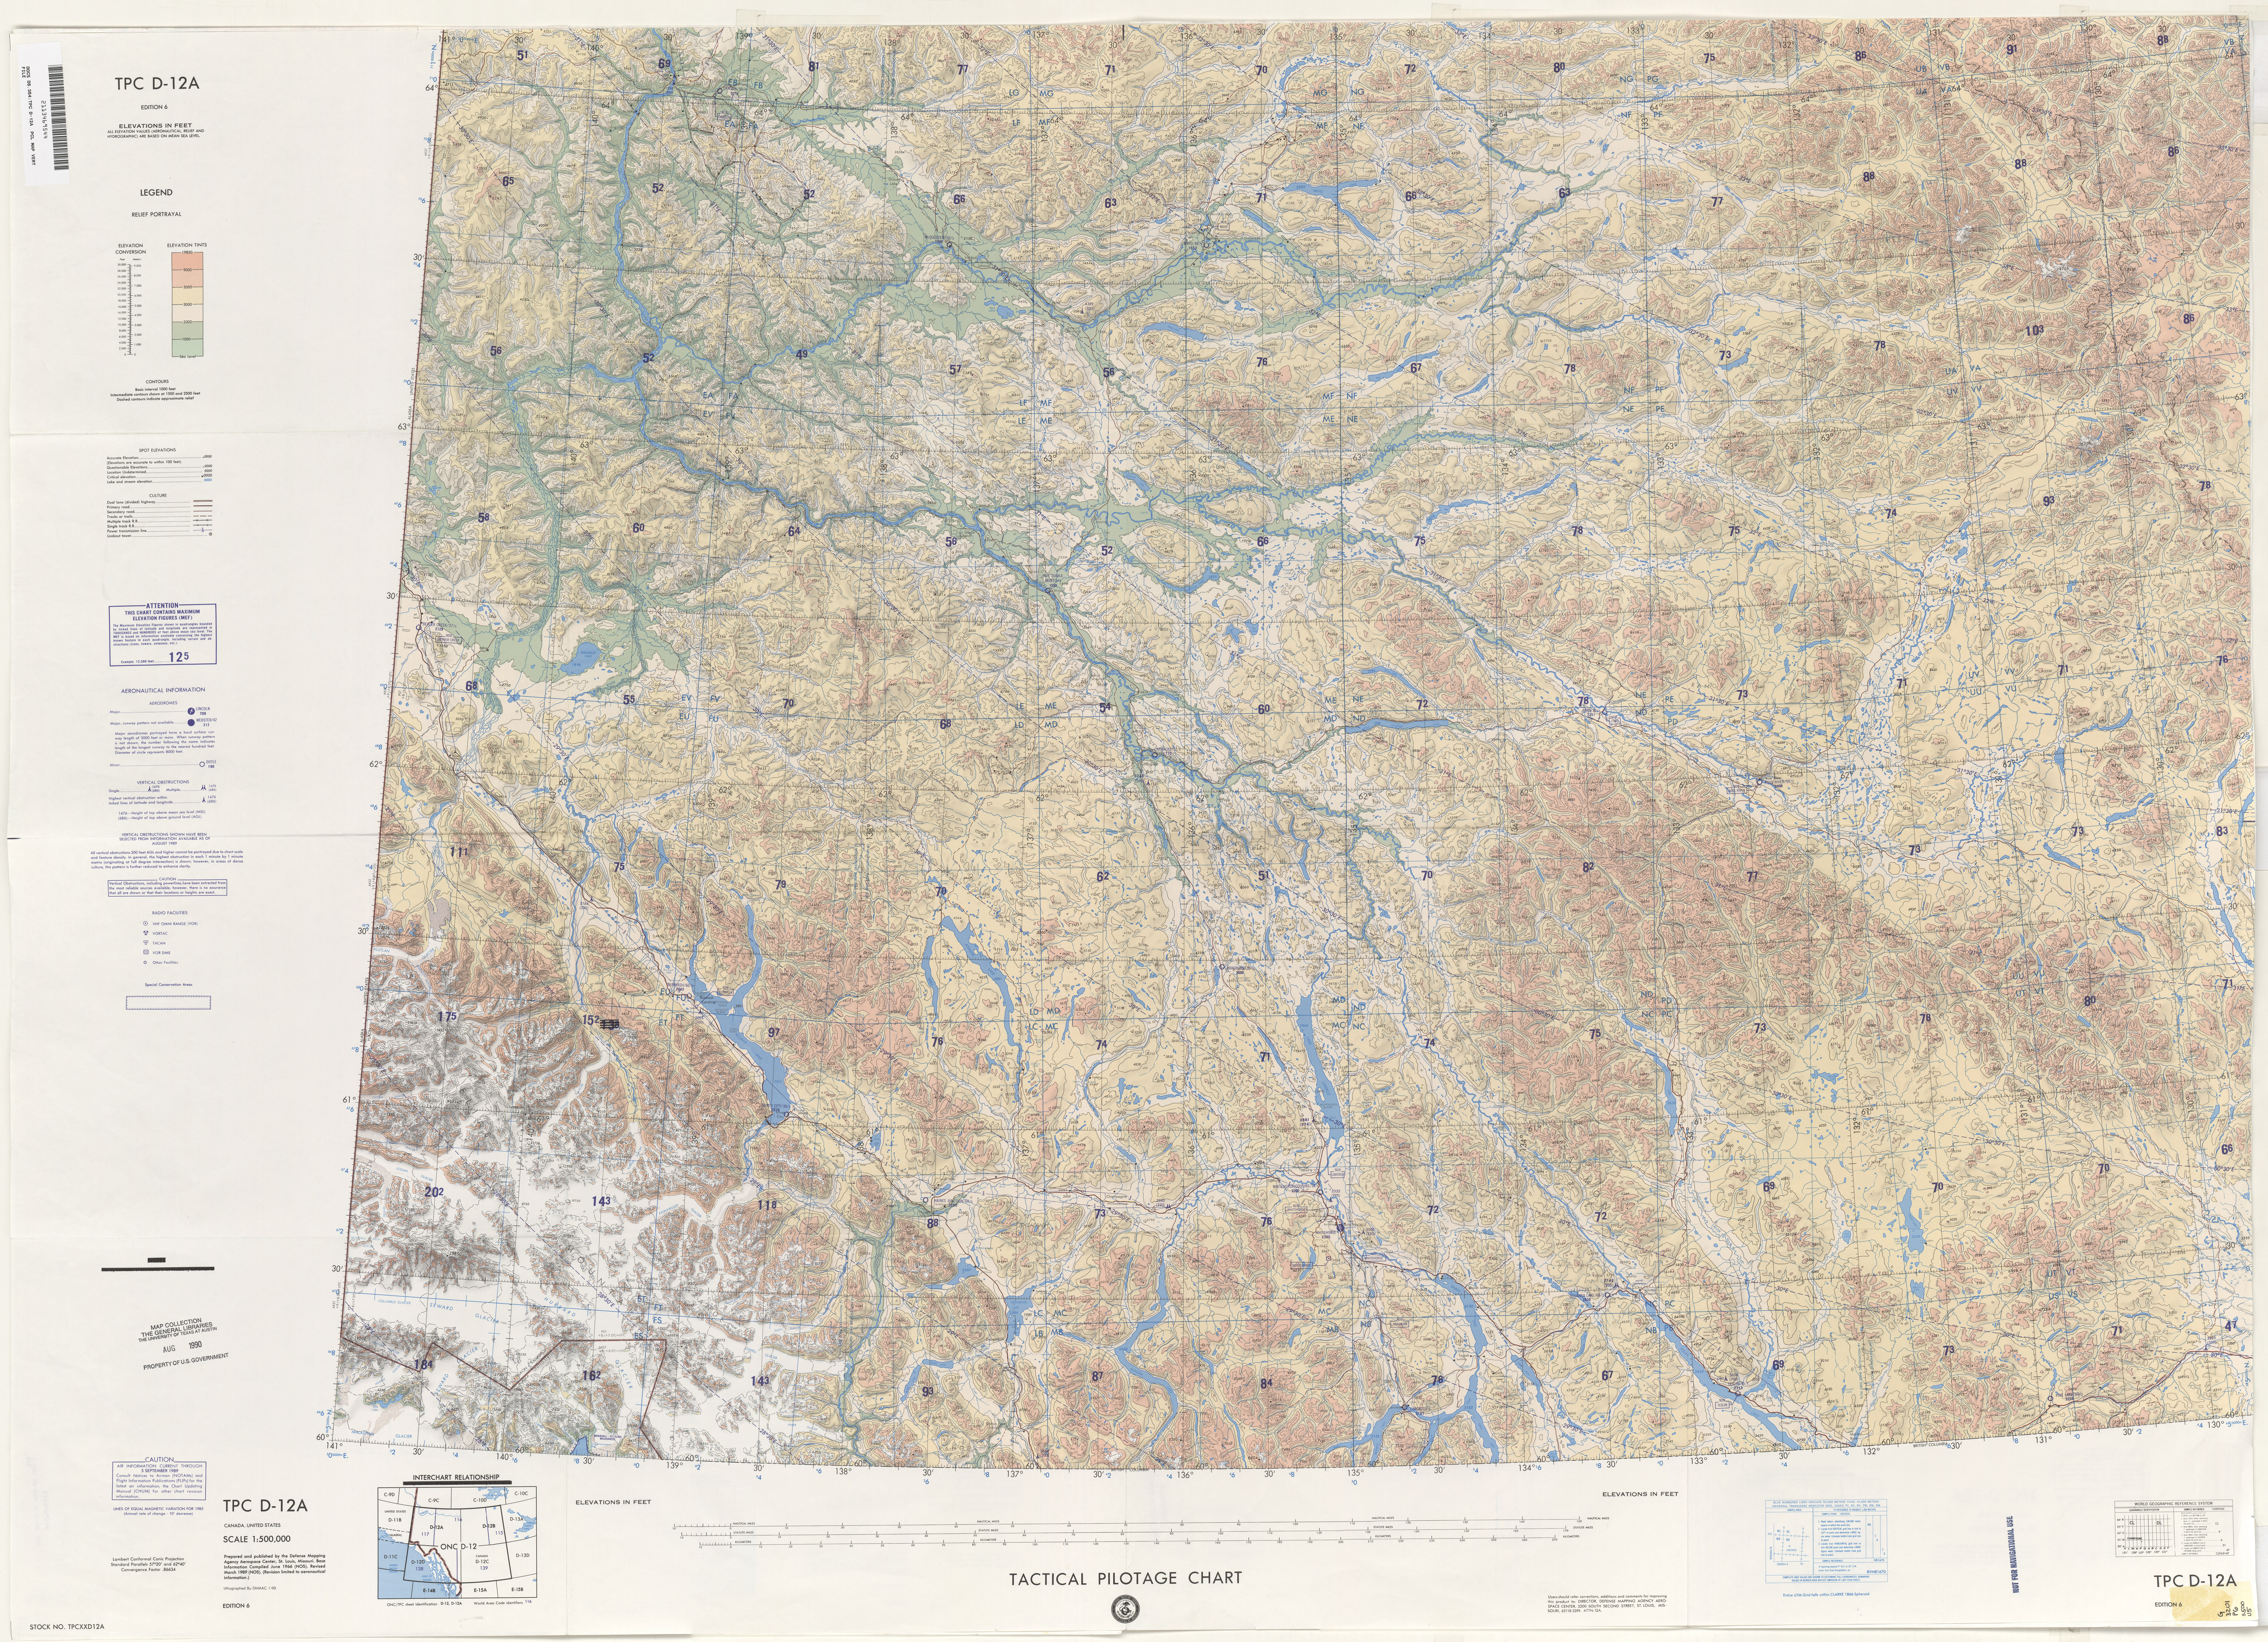 Tactical Pilotage Charts PerryCastañeda Map Collection UT - Us defense mapping agency